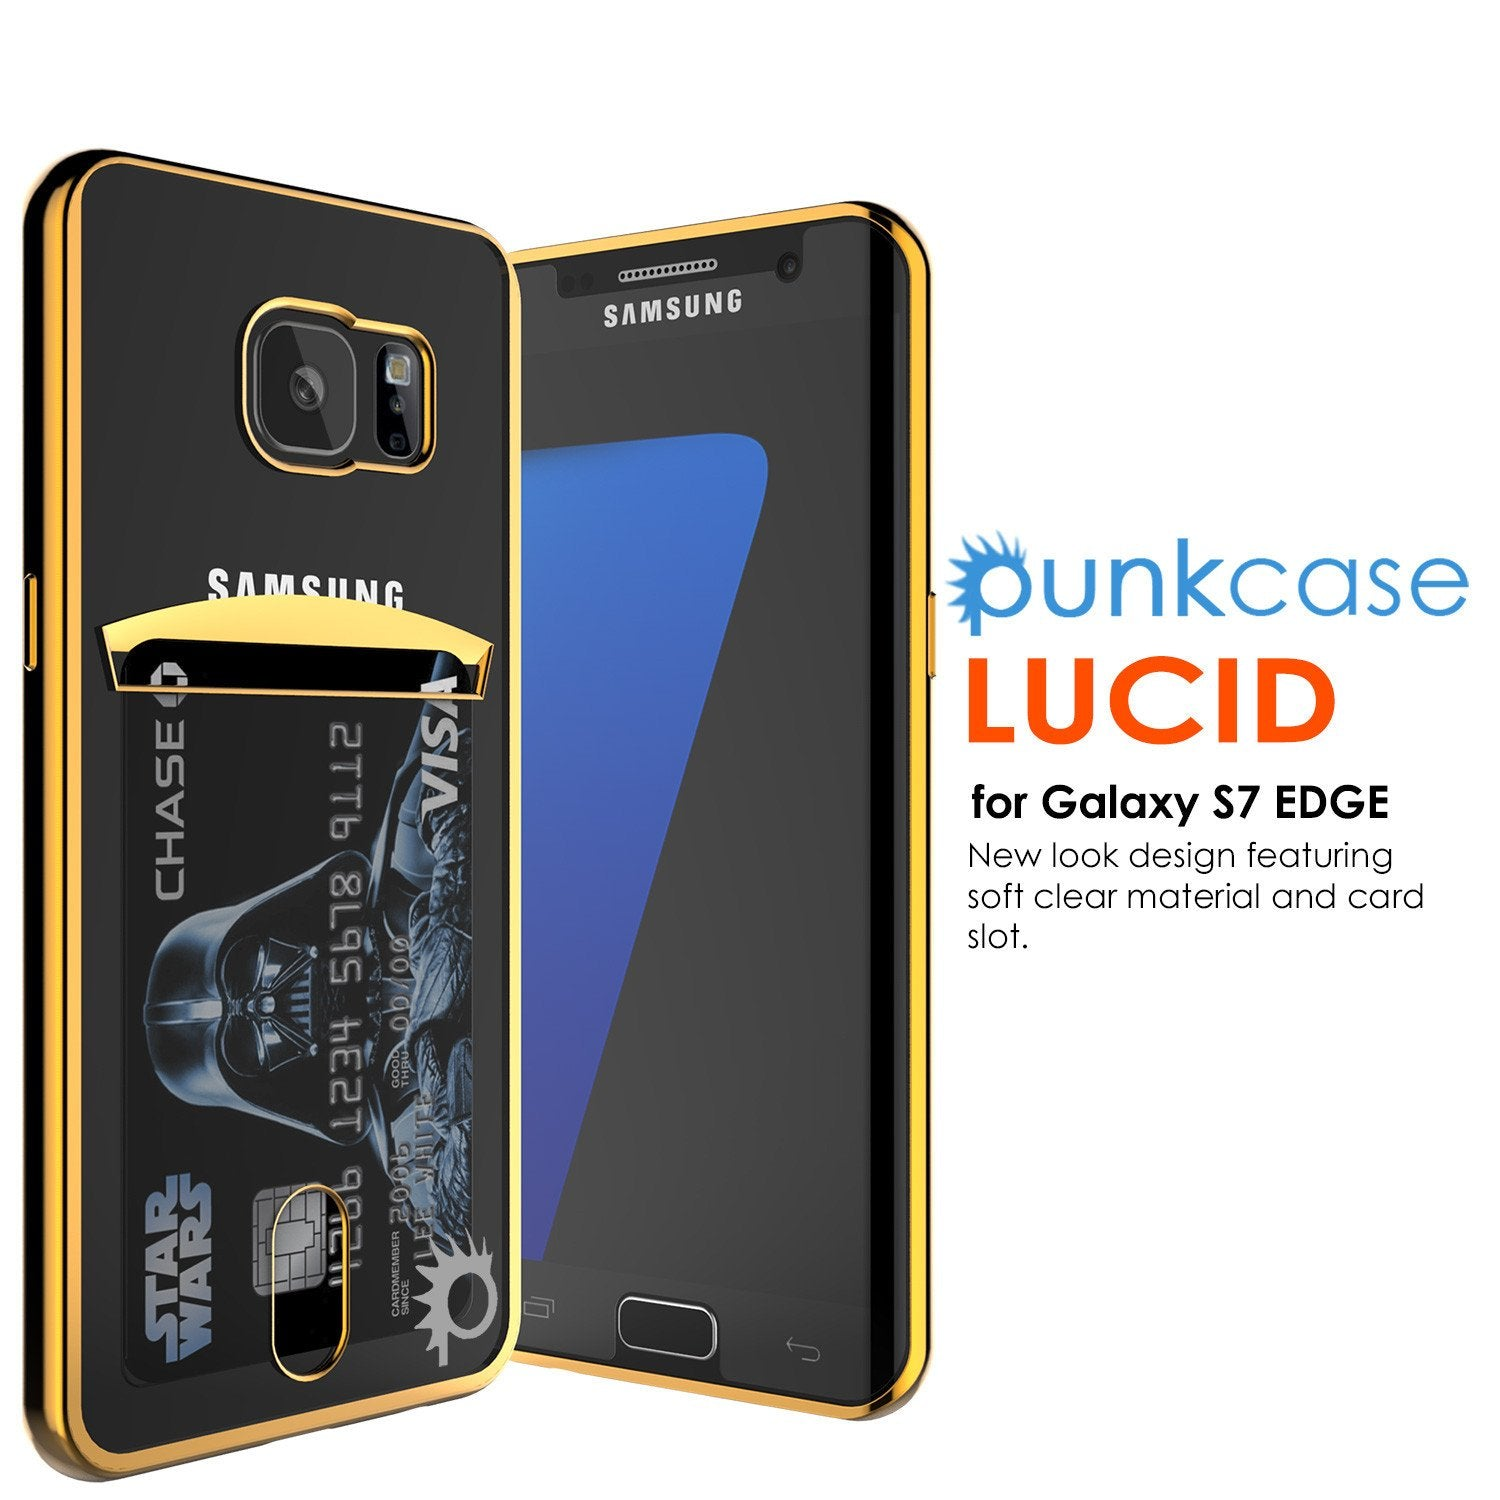 Galaxy S7 Case, PUNKCASE® LUCID Gold Series | Card Slot